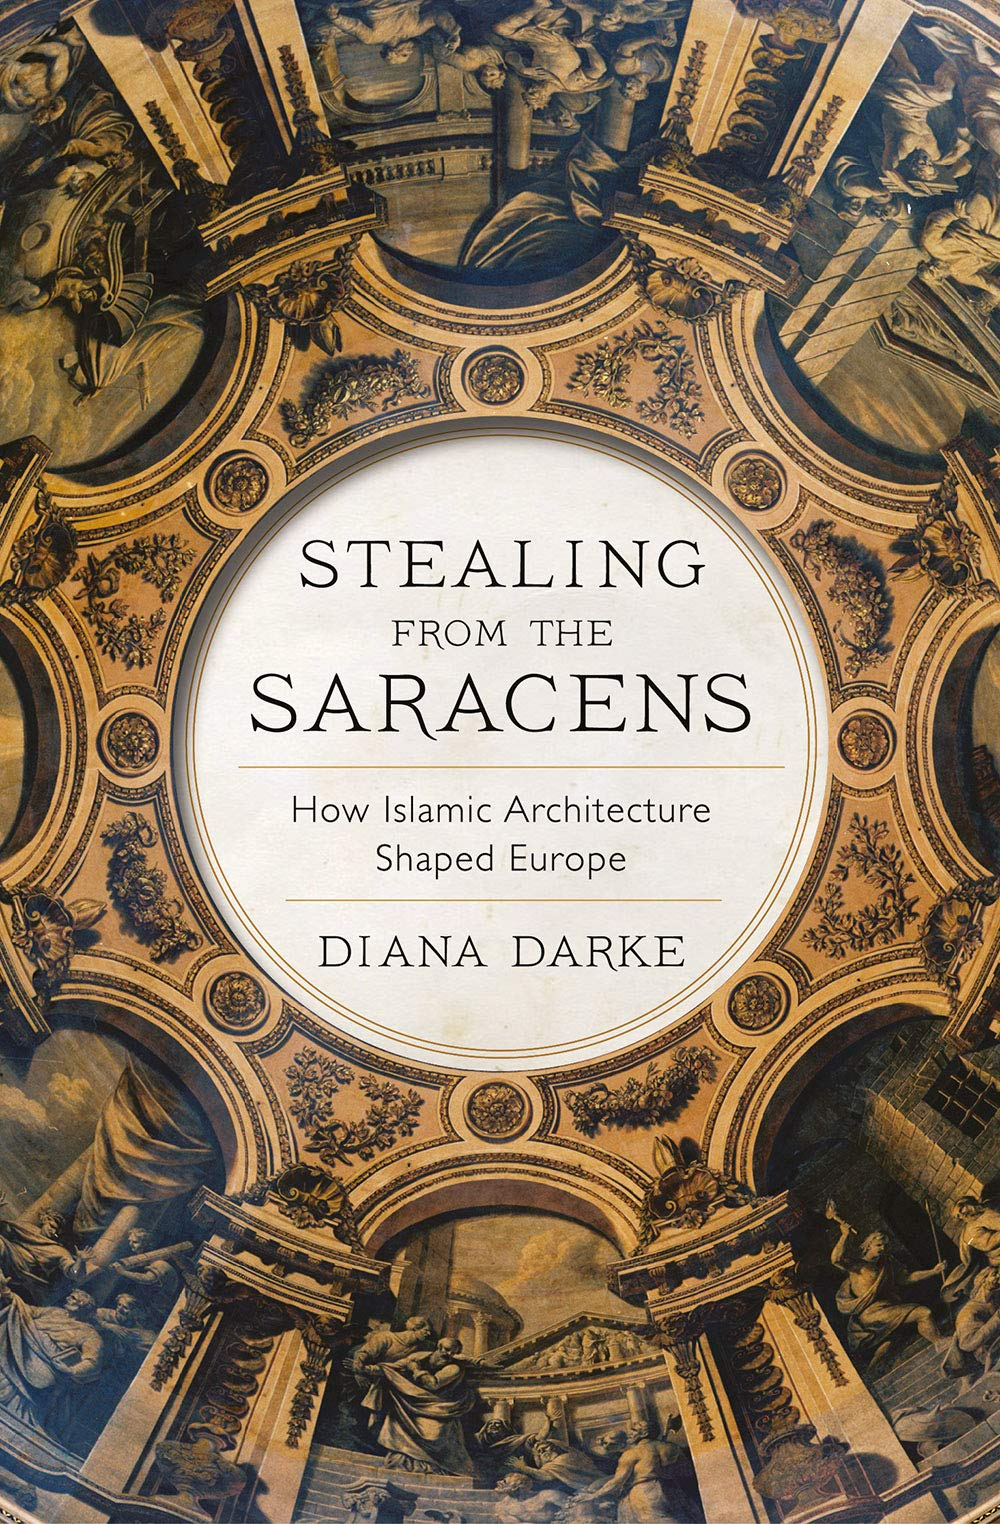 Stealing from the Saracens How Islamic Architecture Shaped Europe